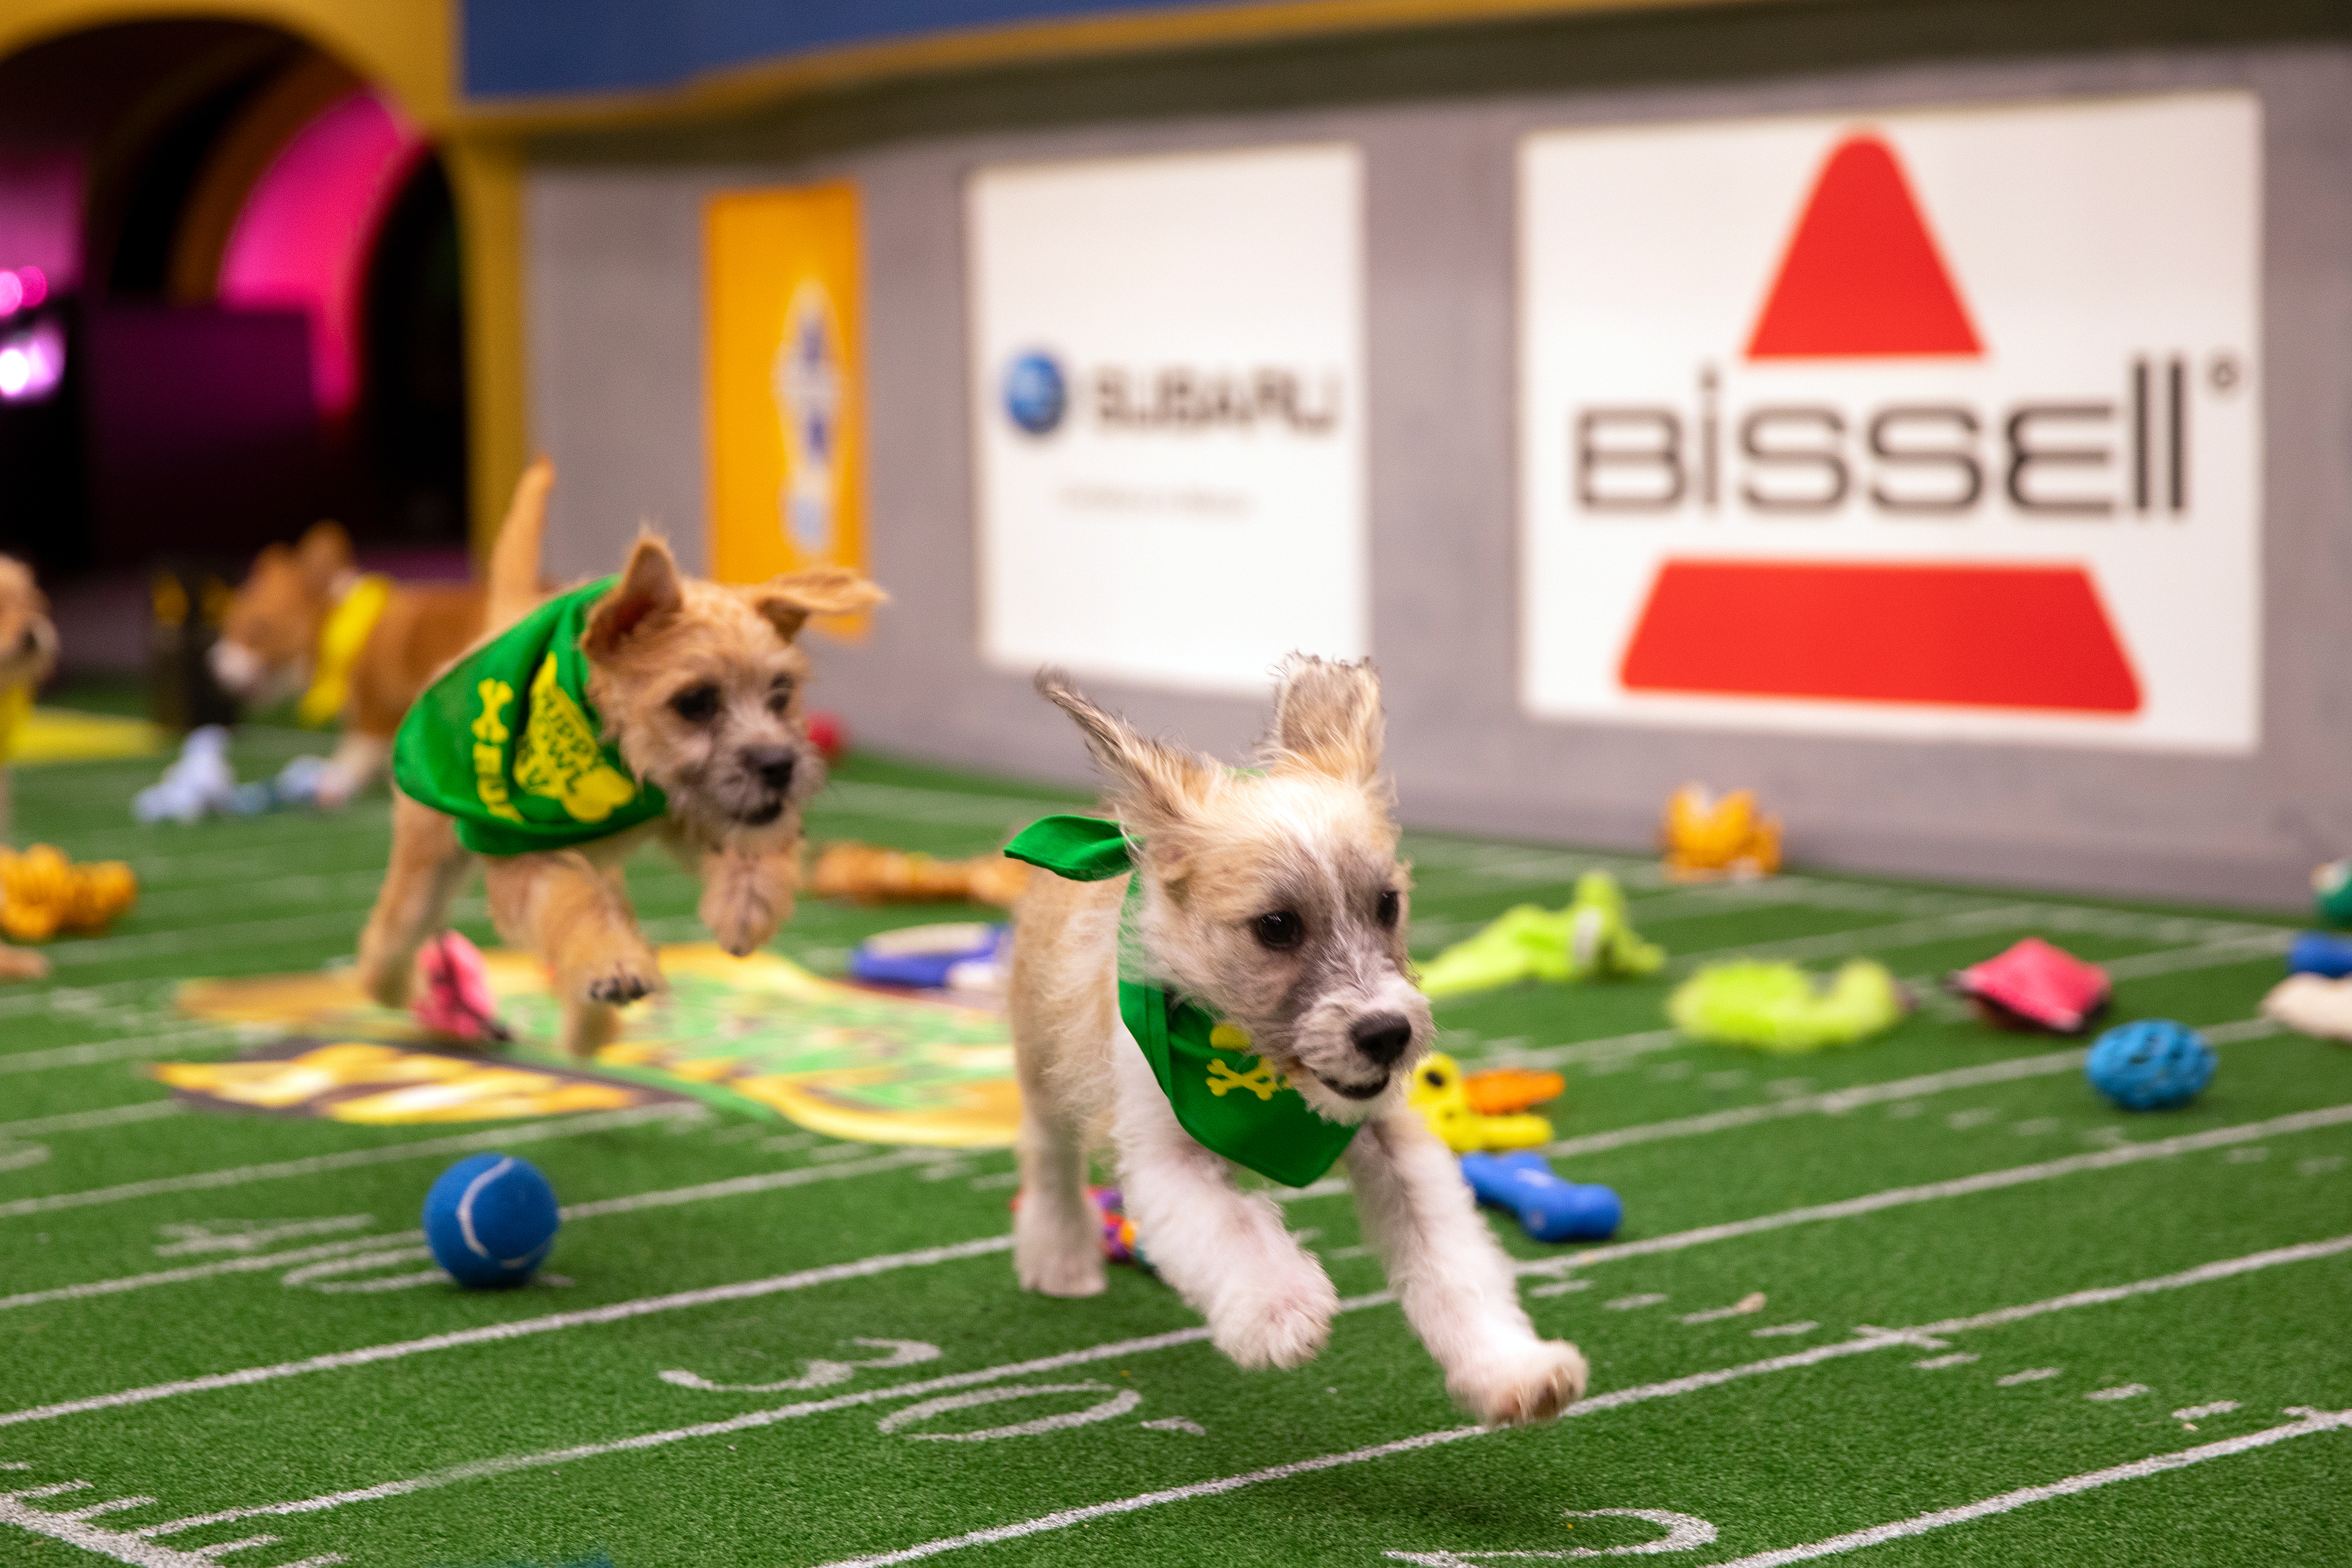 Two puppies playing at the 2019 Puppy Bowl.